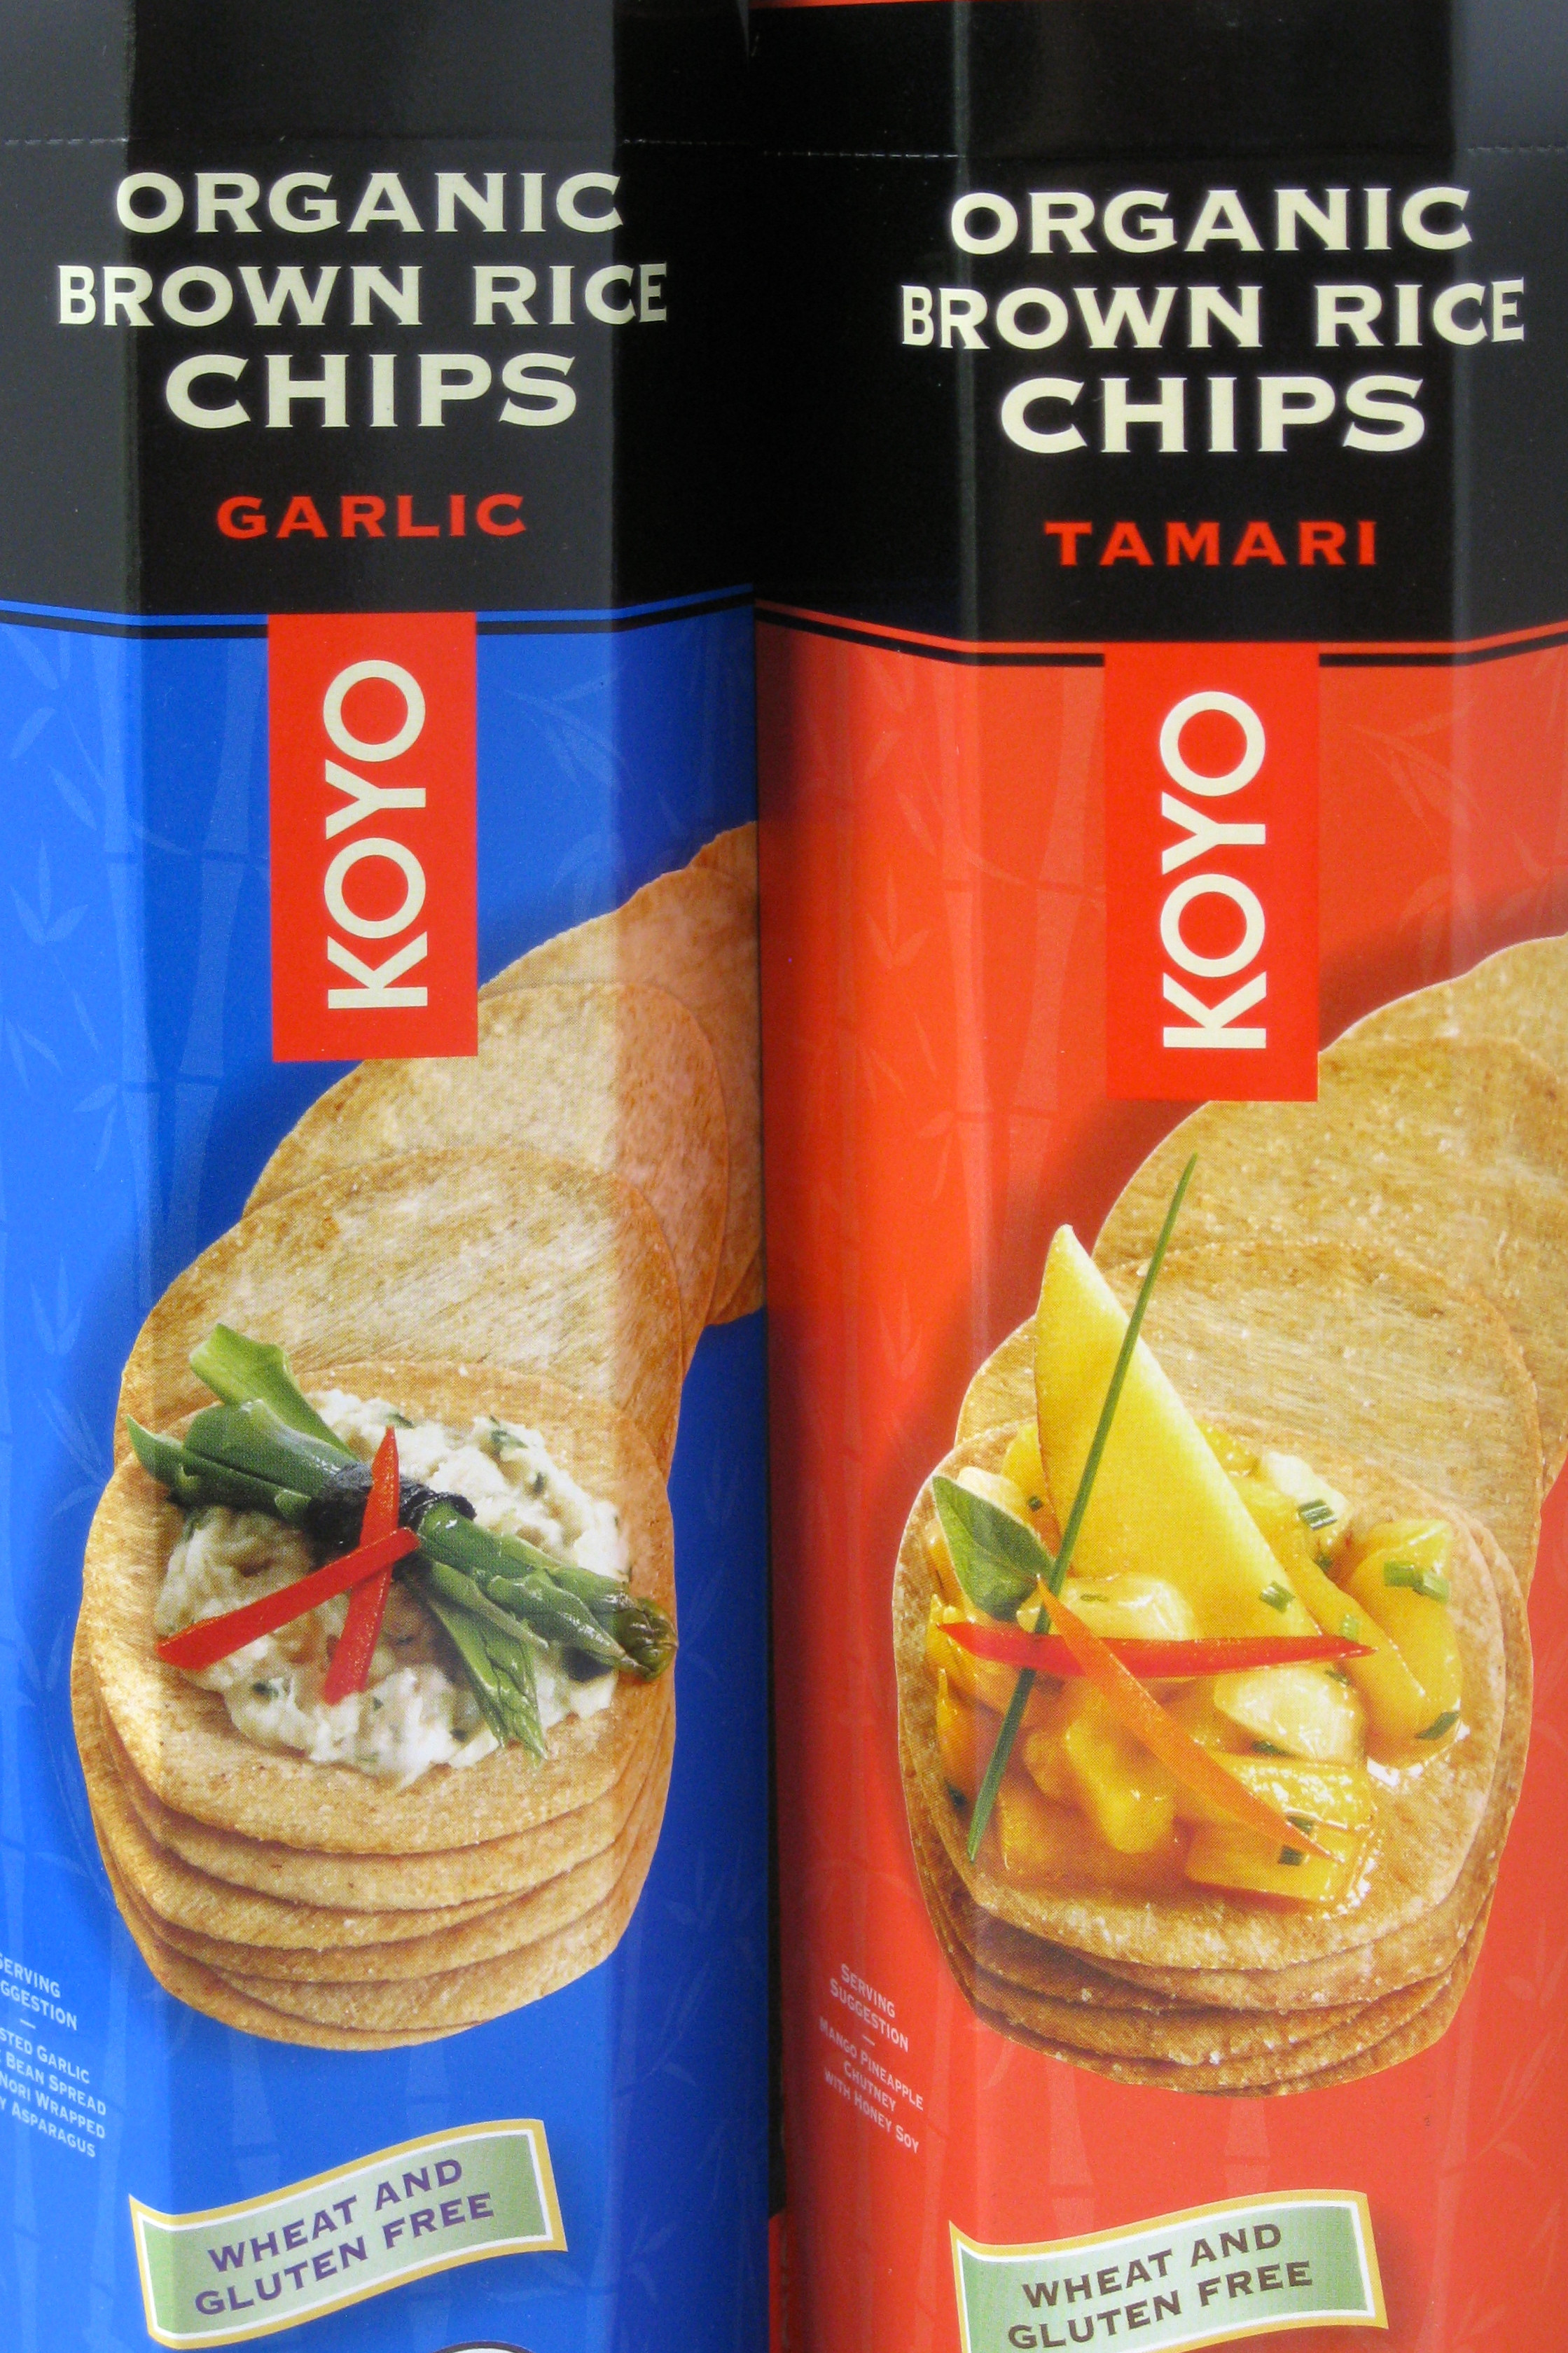 Does Brown Rice Have Gluten  Friday's Find Organic Brown Rice Chips